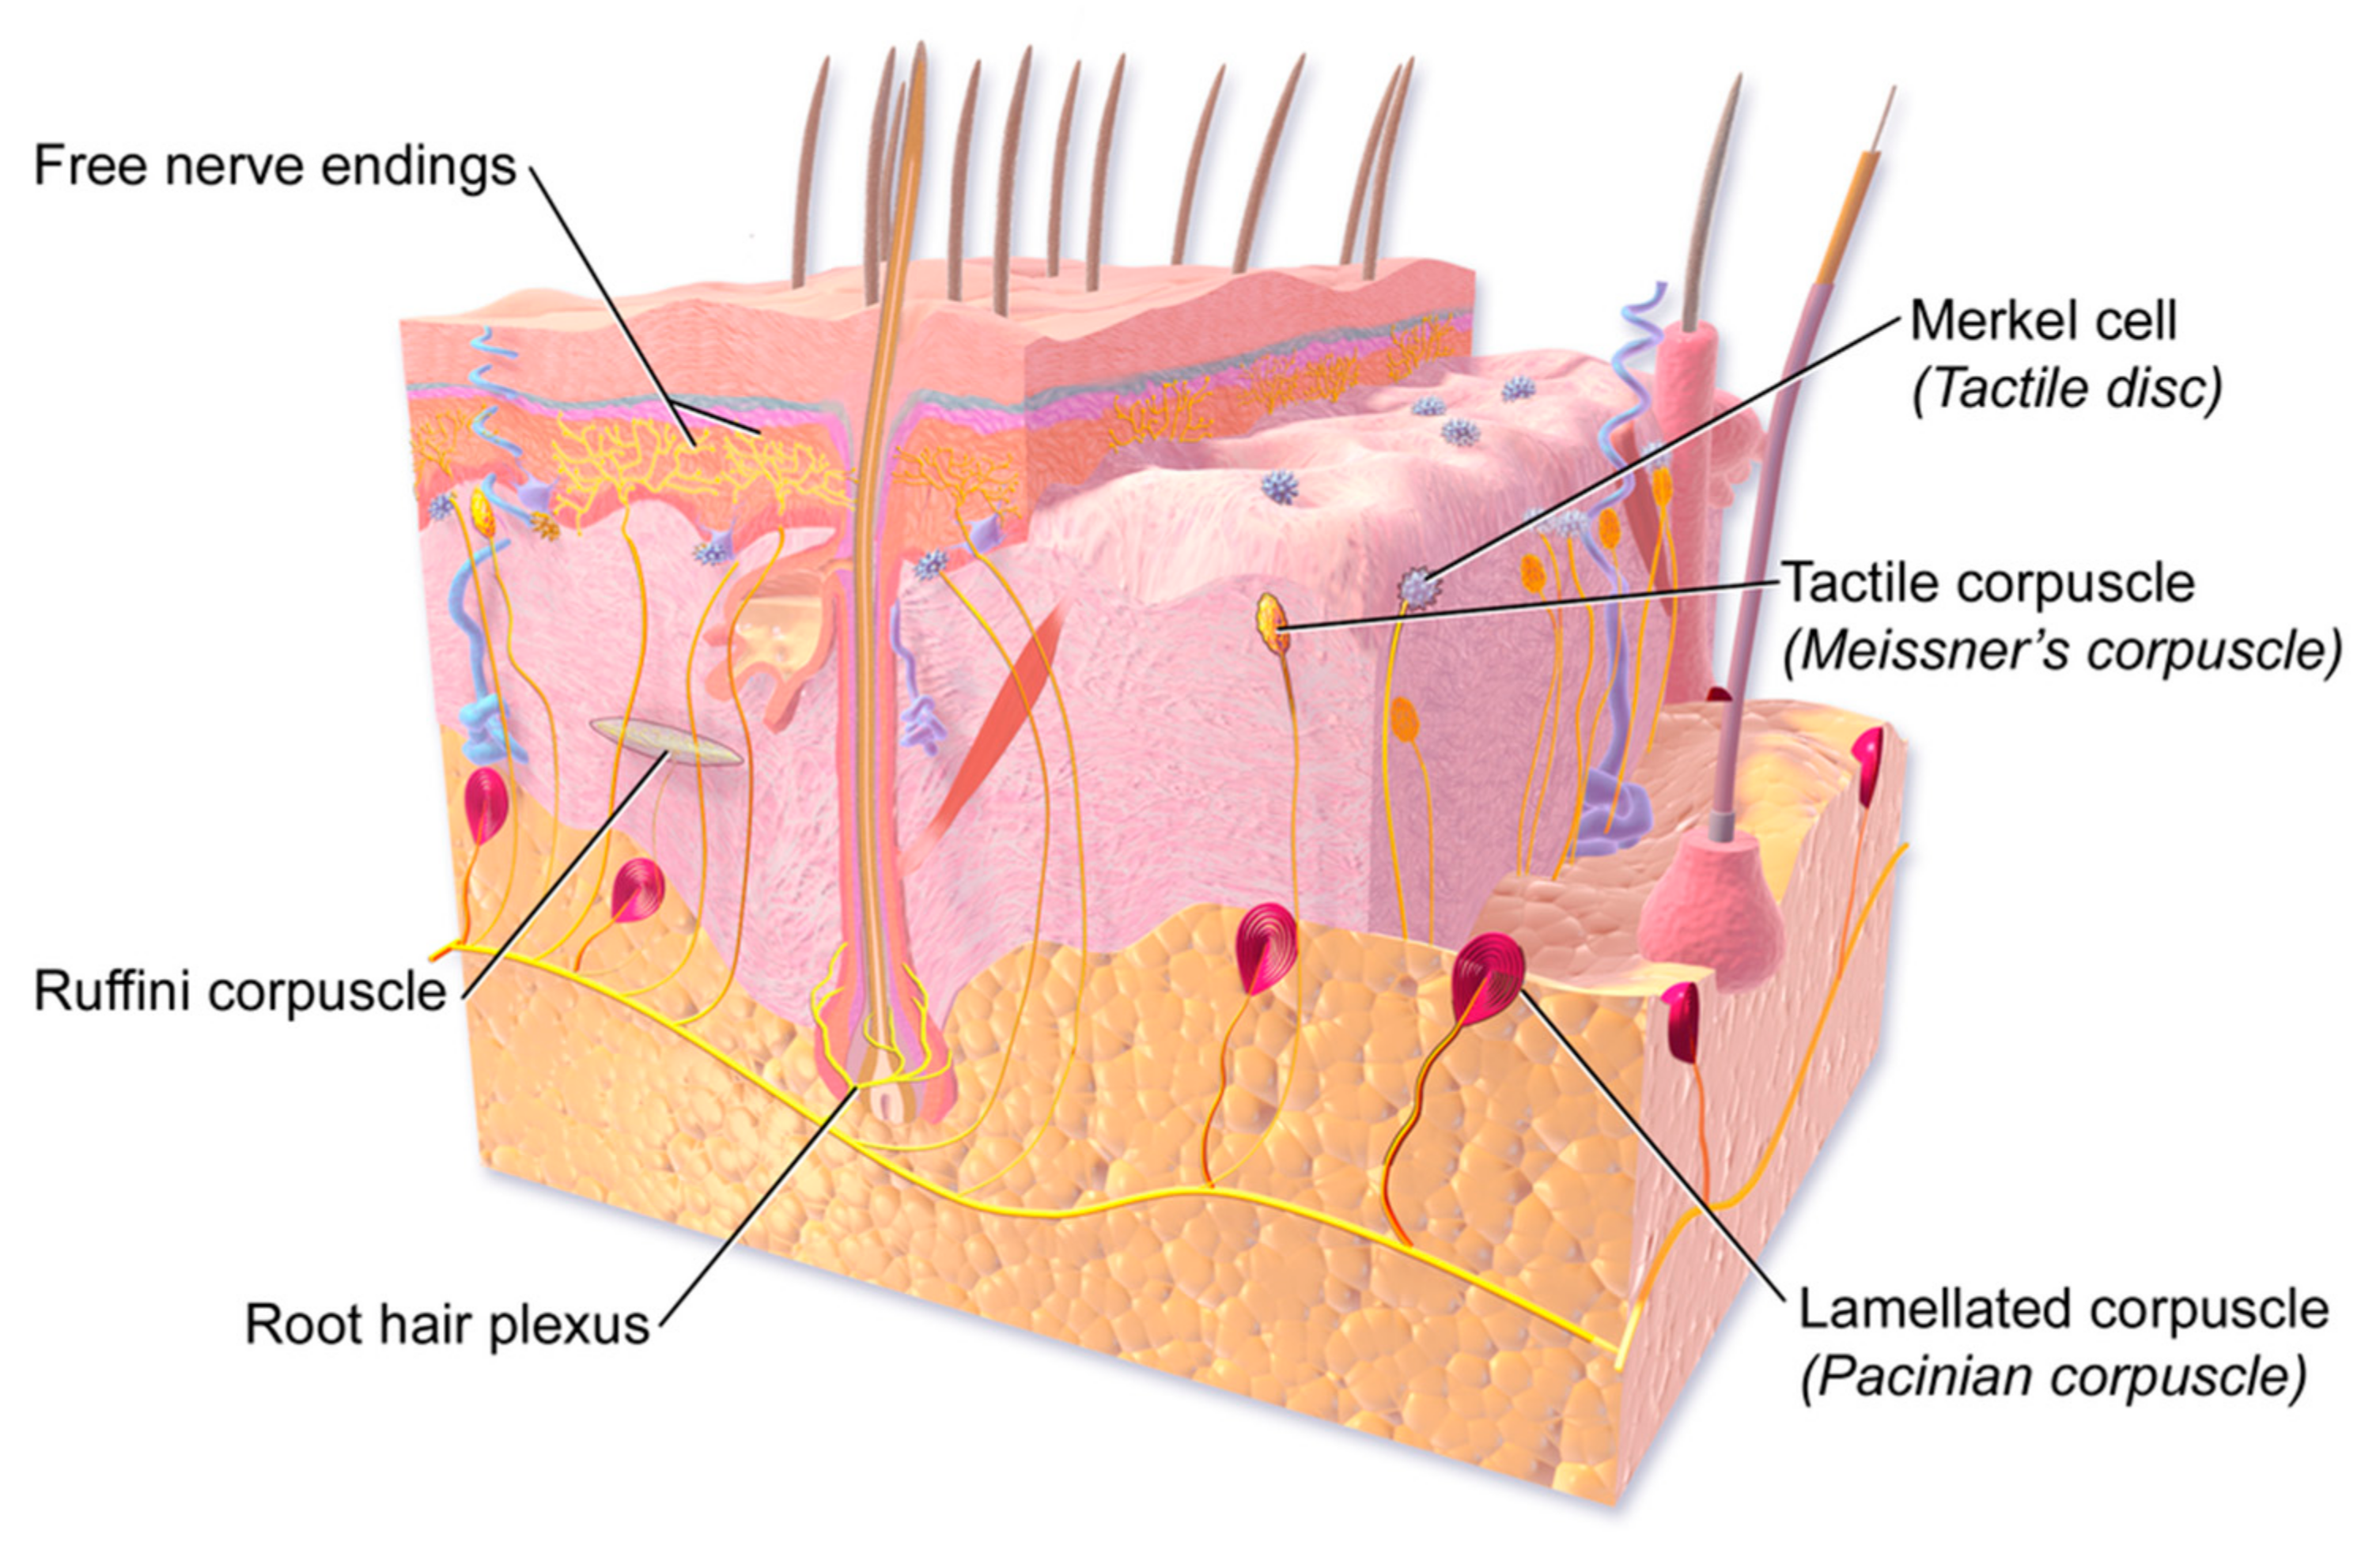 Epidermis Definition Of Epidermis By MerriamWebster,Maceration Definition  Of Maceration By Medical Dictionary,Infection Definition Of Infection By  Medical ...